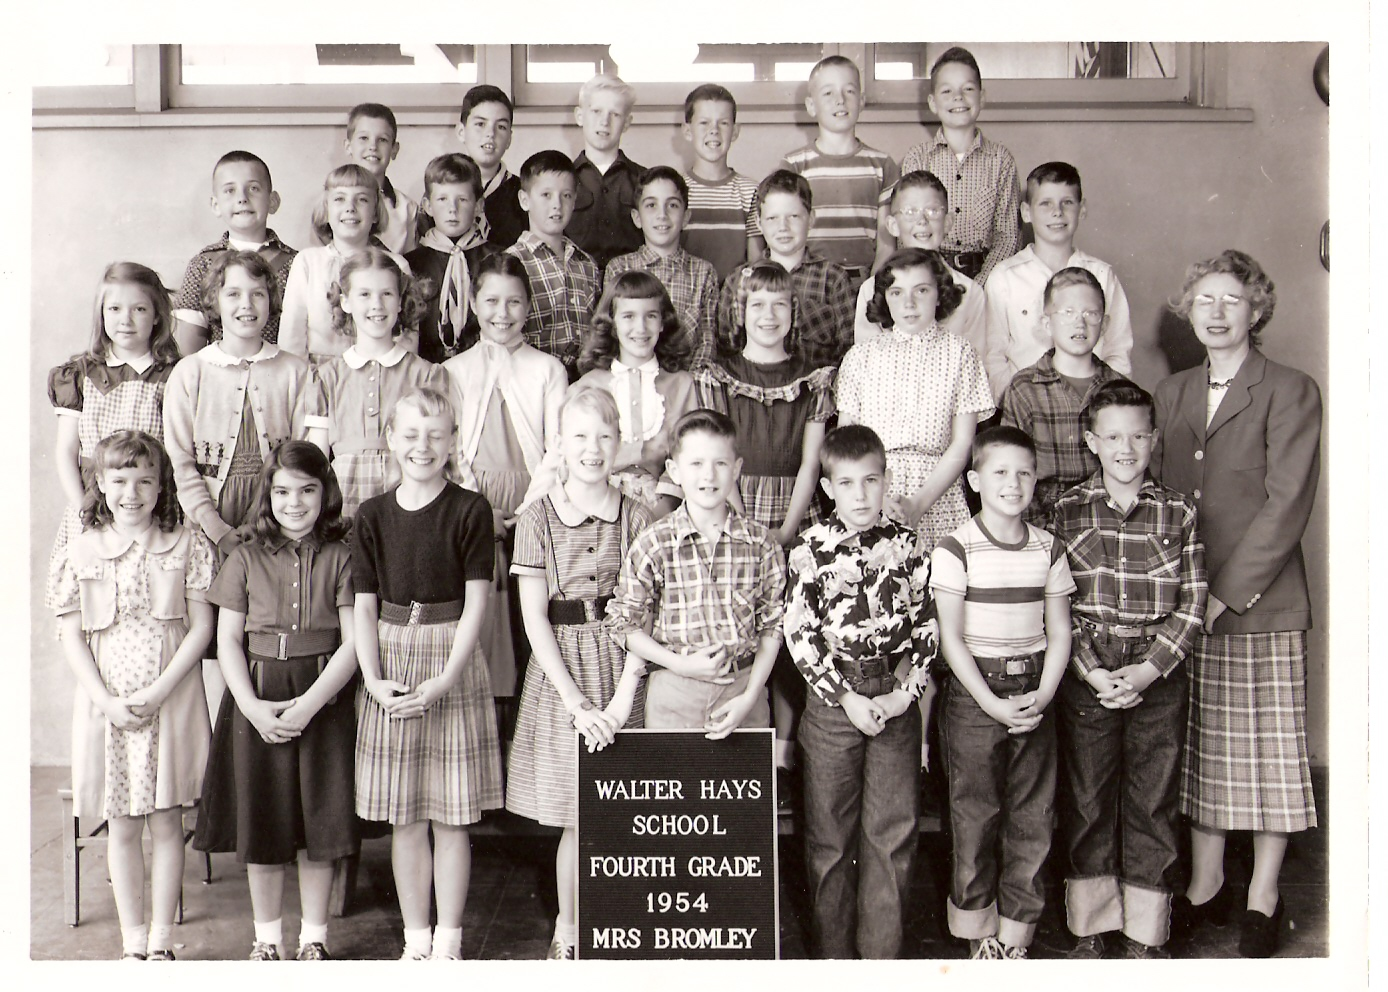 Walter Hays Elementary Fourth Grade Class, 1954